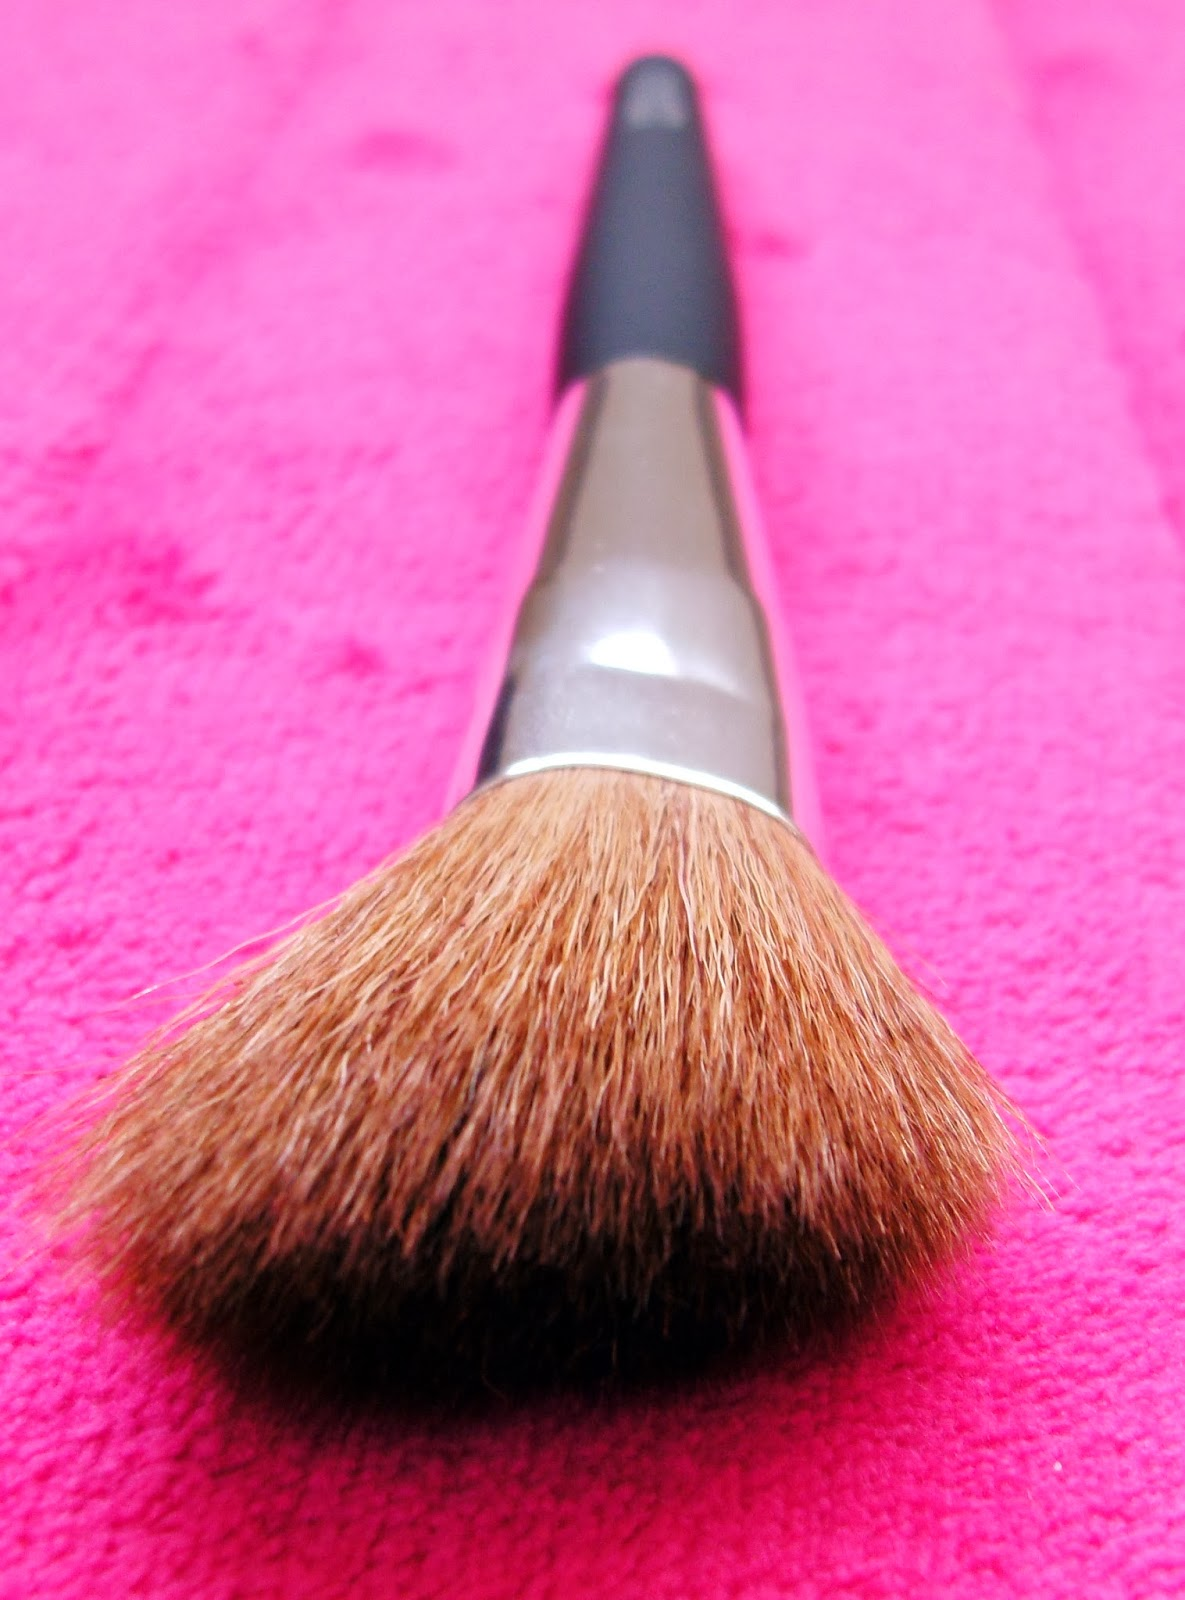 Bargain Barbara Daly Blusher Makeup Brush from Tesco